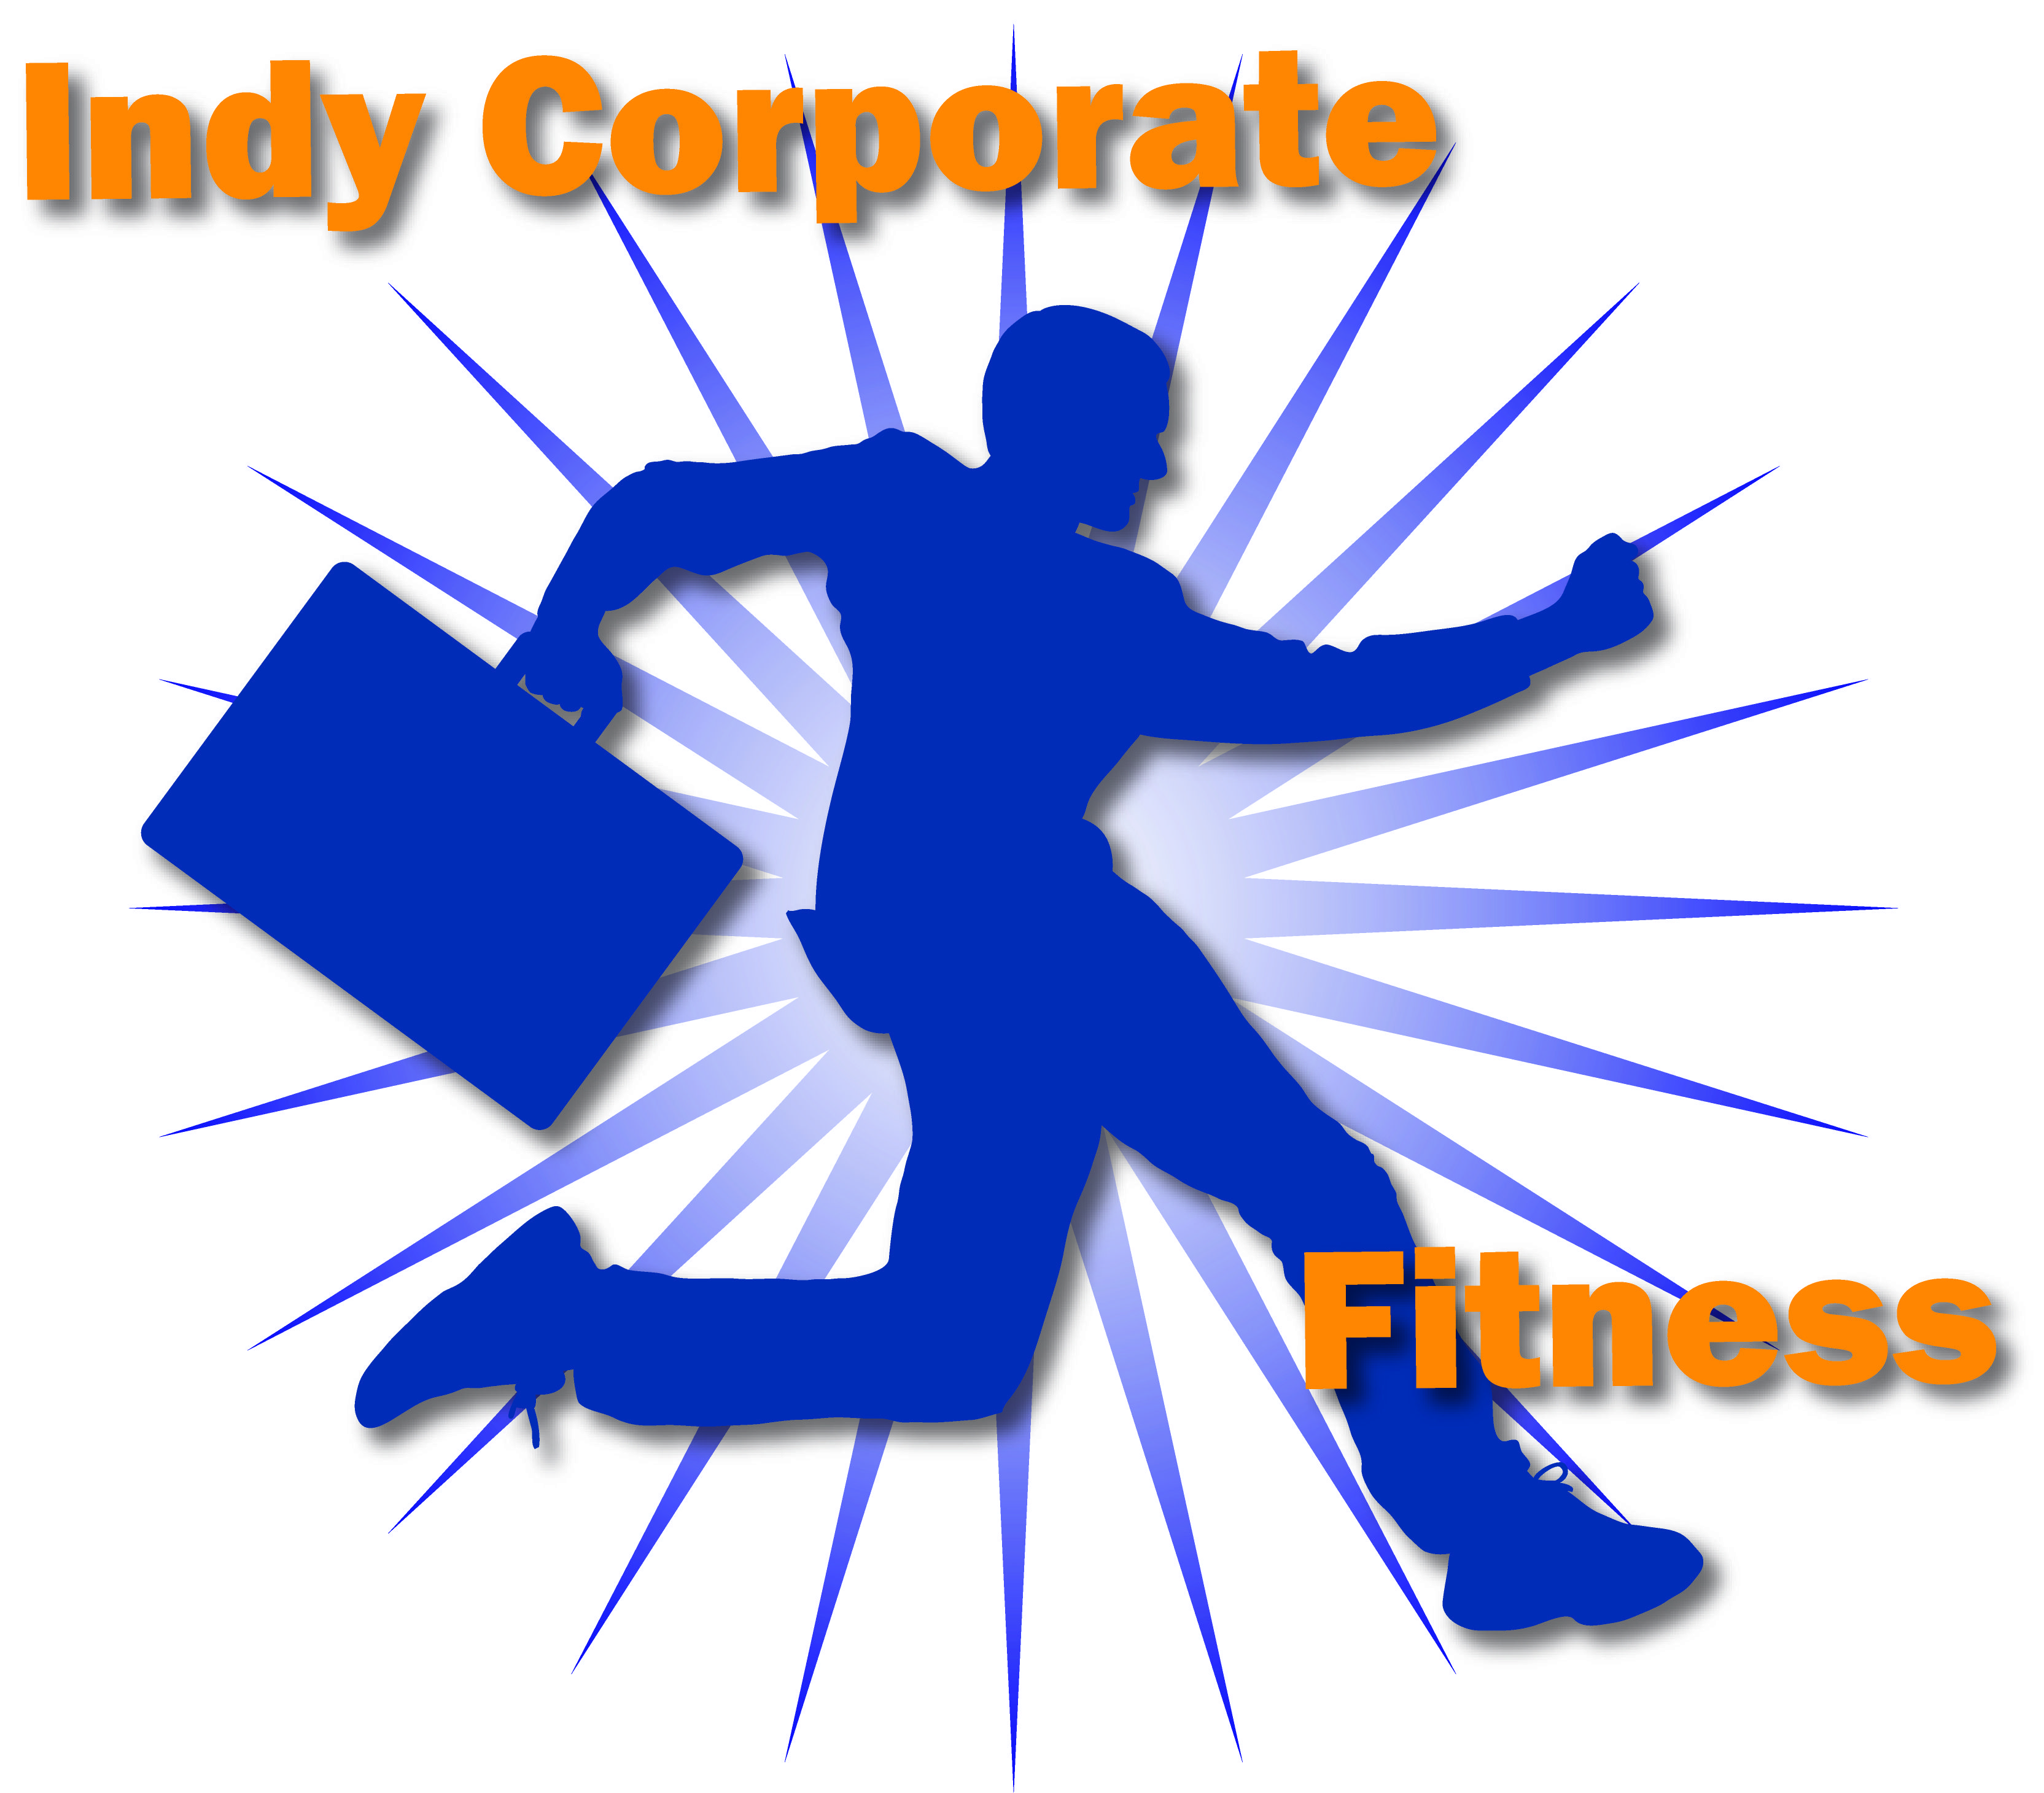 Training Corporate Employees & Companies all around Indianapolis & surrounding counties! We provide Group Classes & Personal Training!    www.indycorporatefitness.com